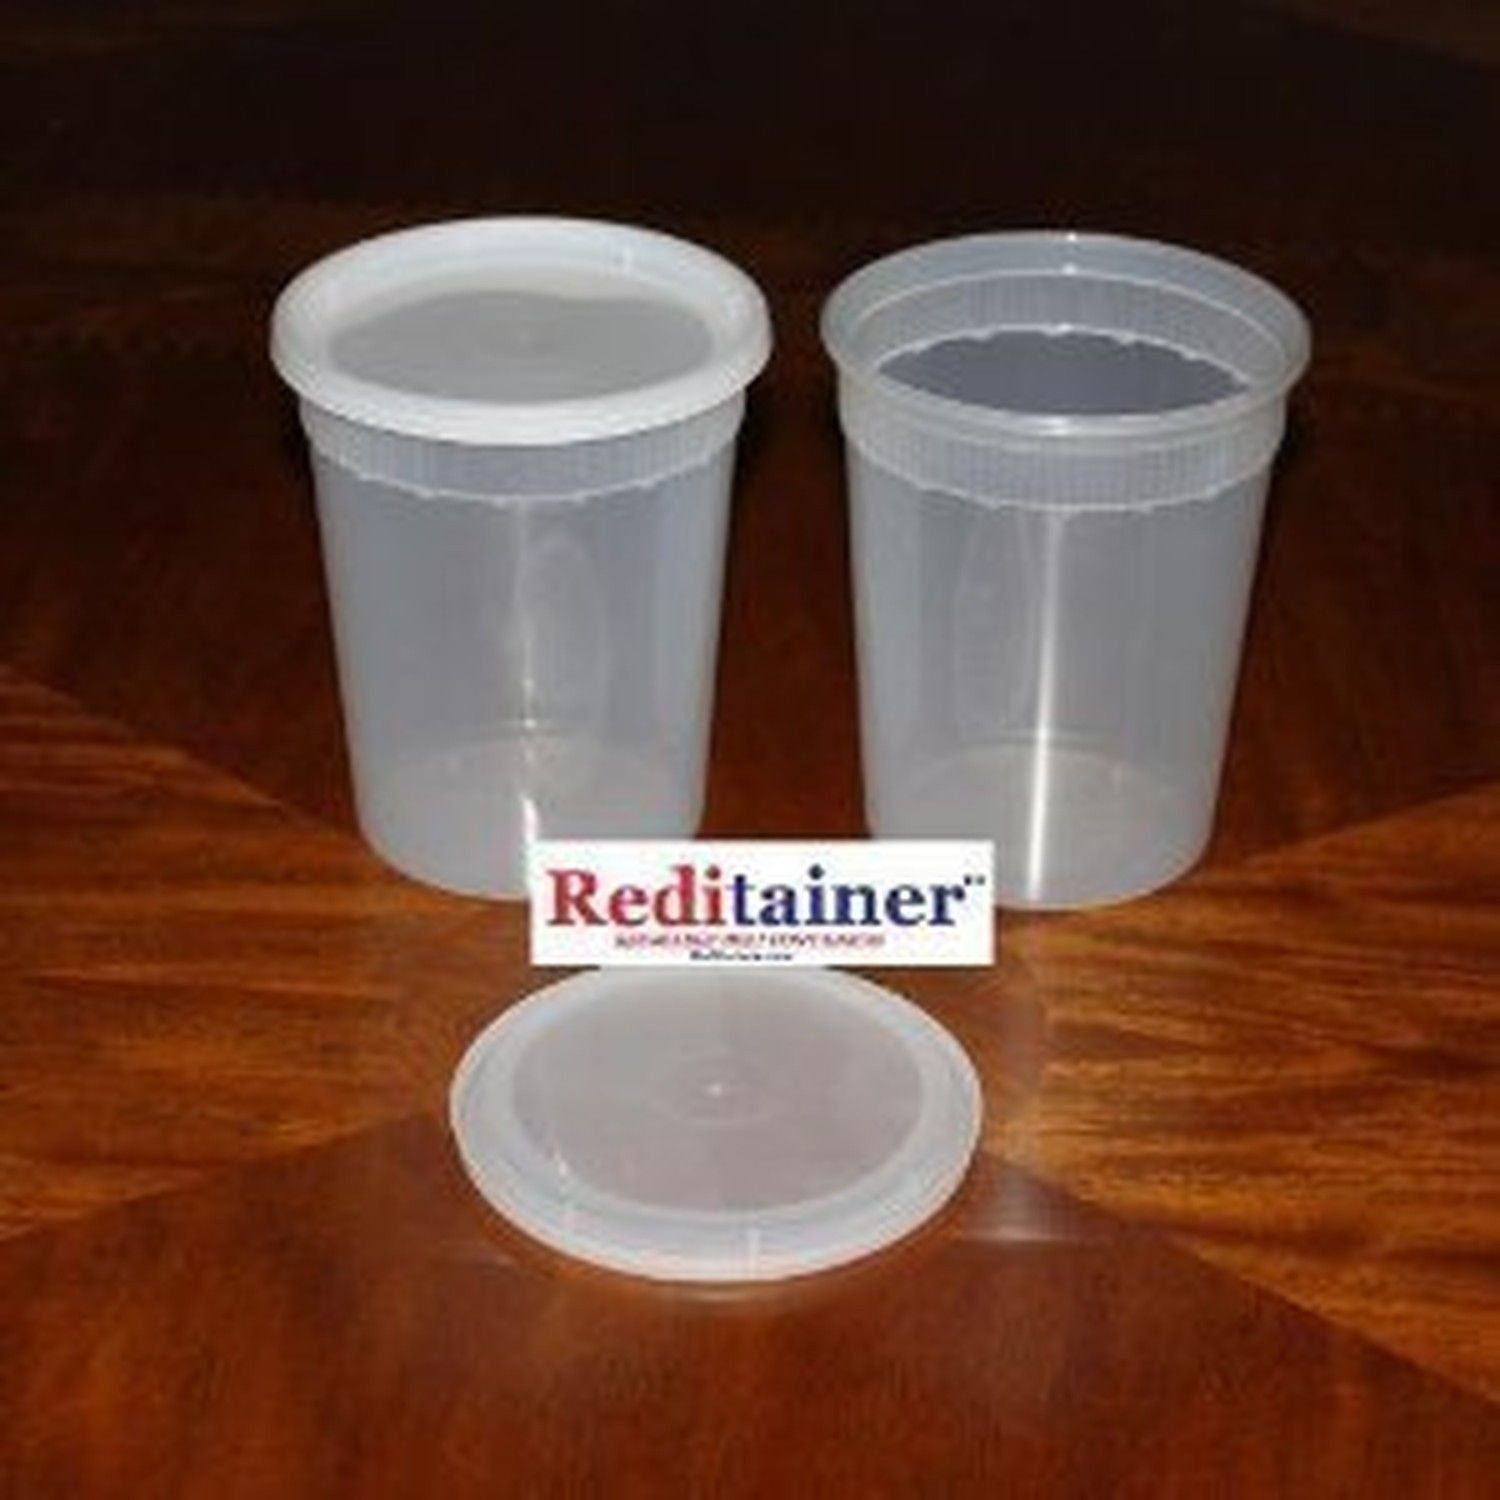 50-Pack Reditainer 32-Ounce Deli Food Storage Containers with Lids